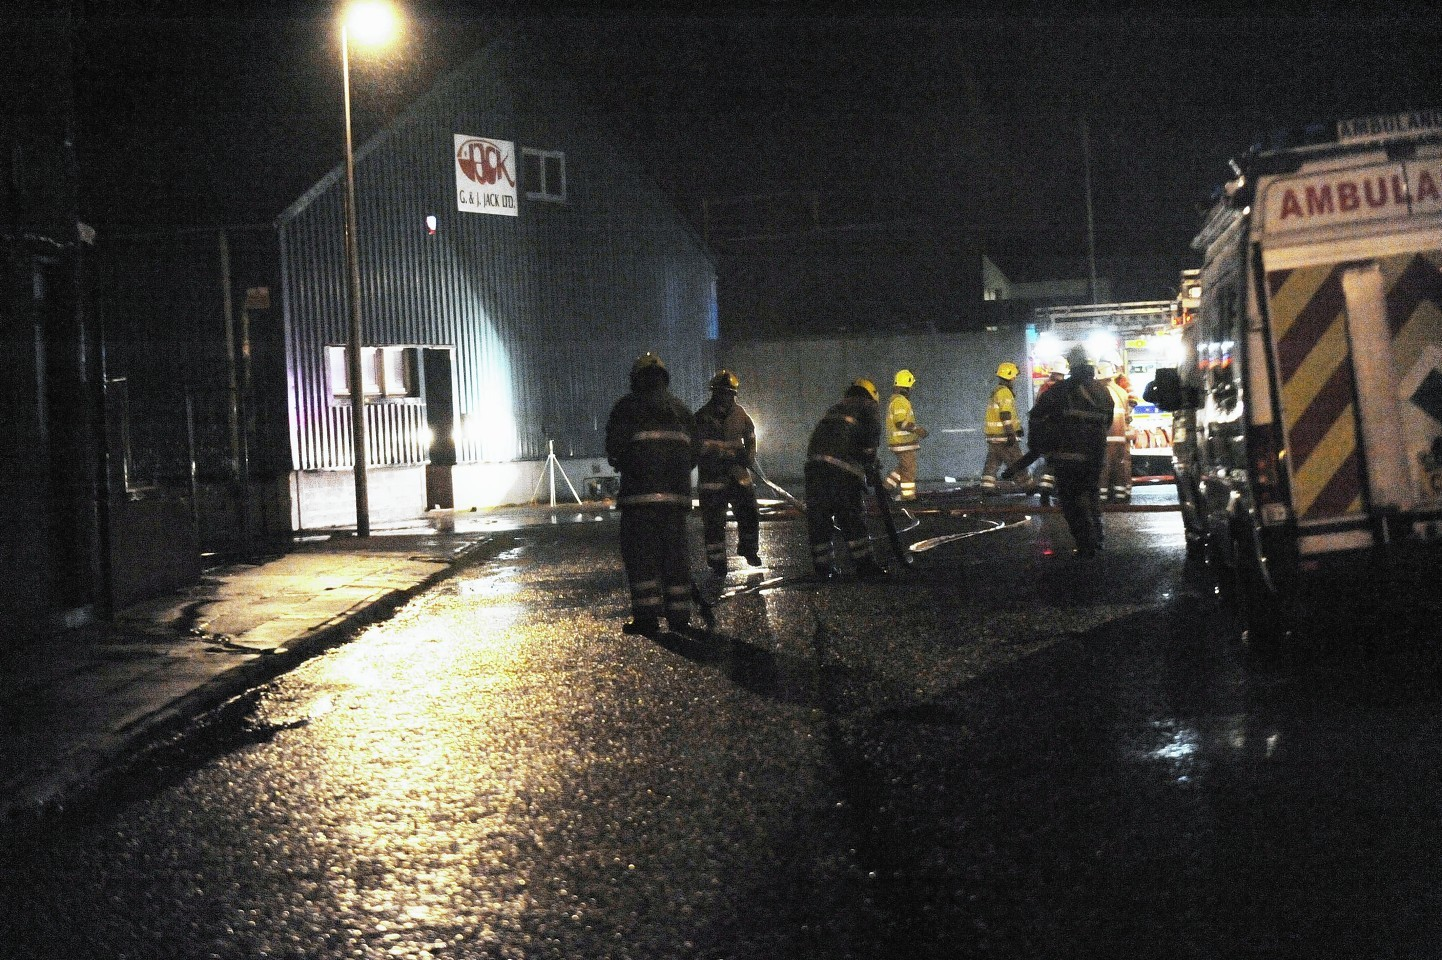 Fire services are now preparing to leave the scene following a blaze at the former G&J Jack Ltd